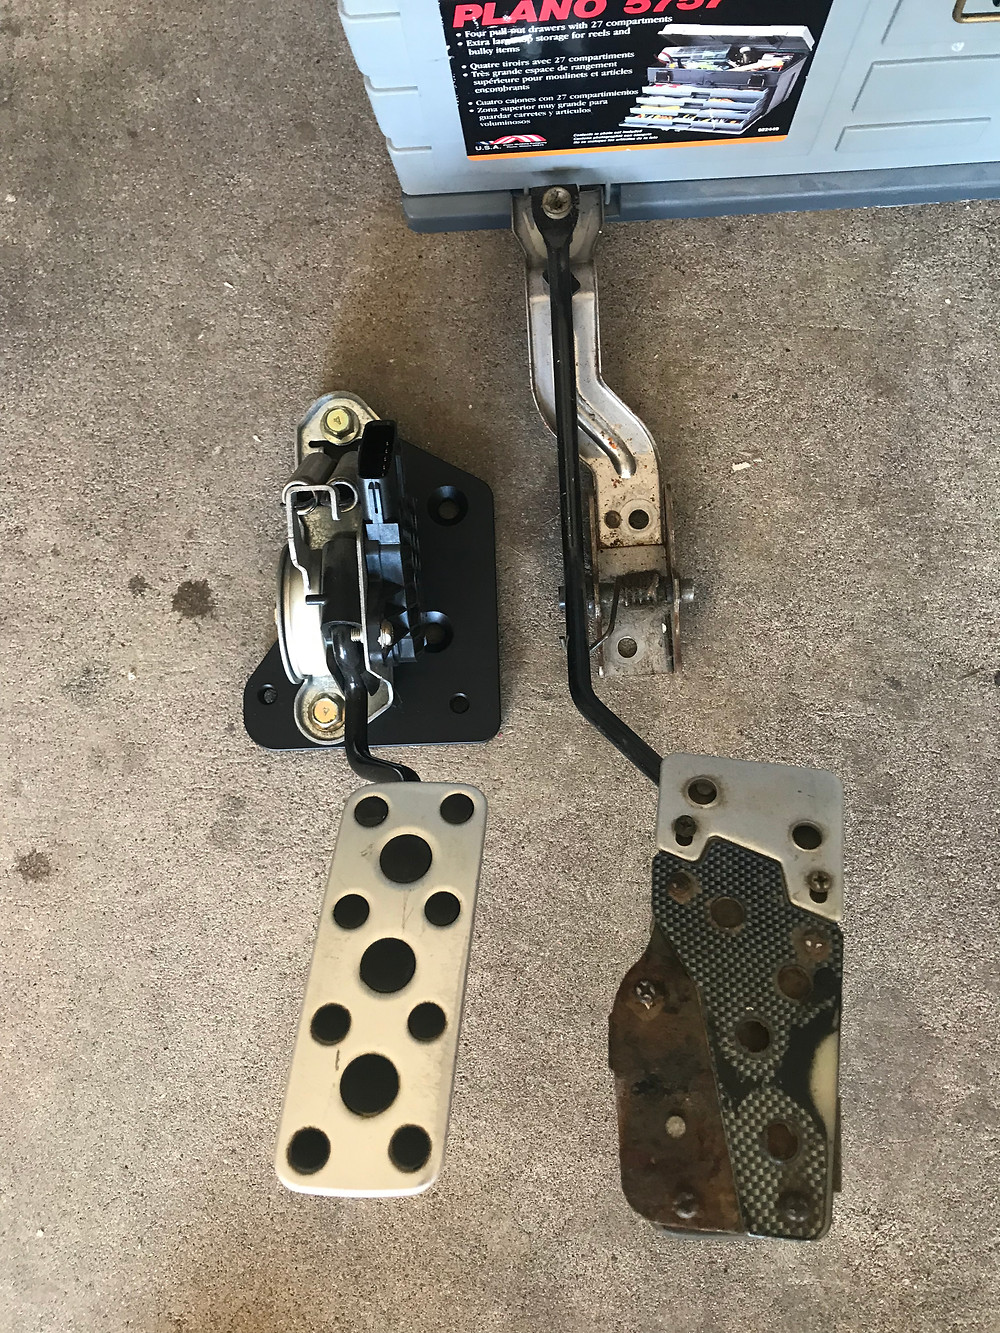 New STi pedal on left. Old 2.5 rs pedal on right.Tyro Racing. A rally racing team.